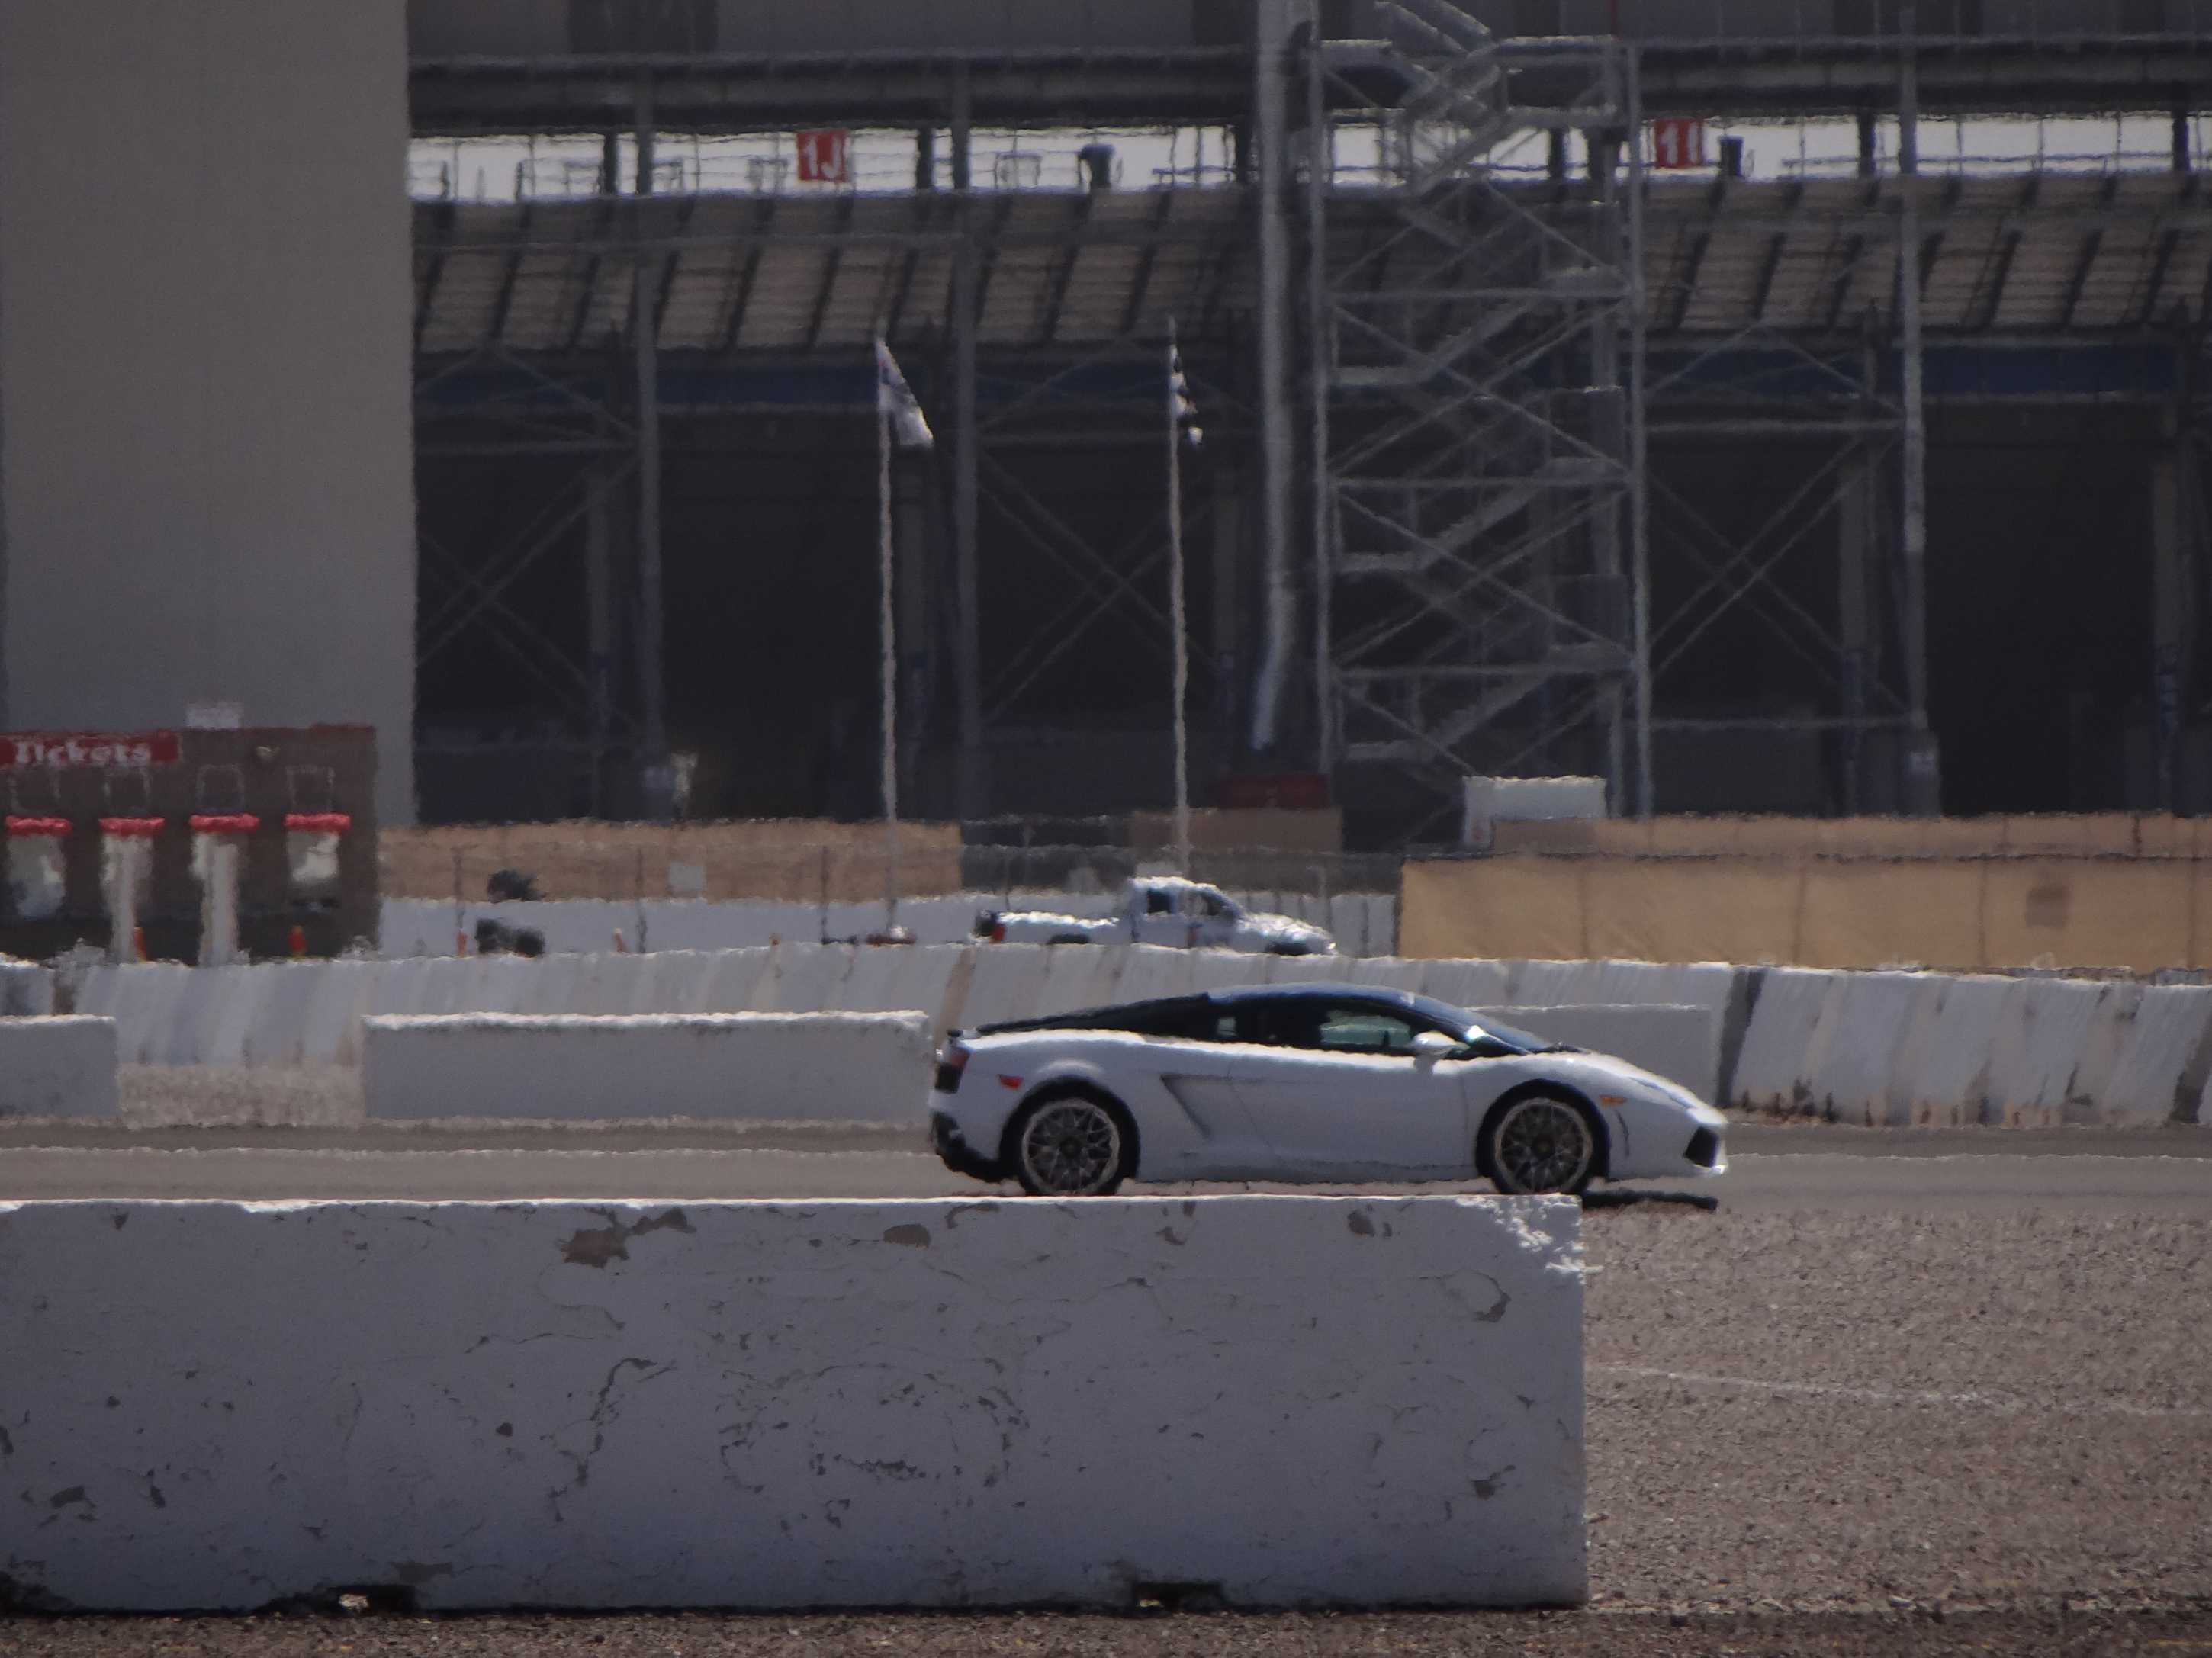 rent youtube around watch racing vegas aventador speedway in las at a lamborghini the